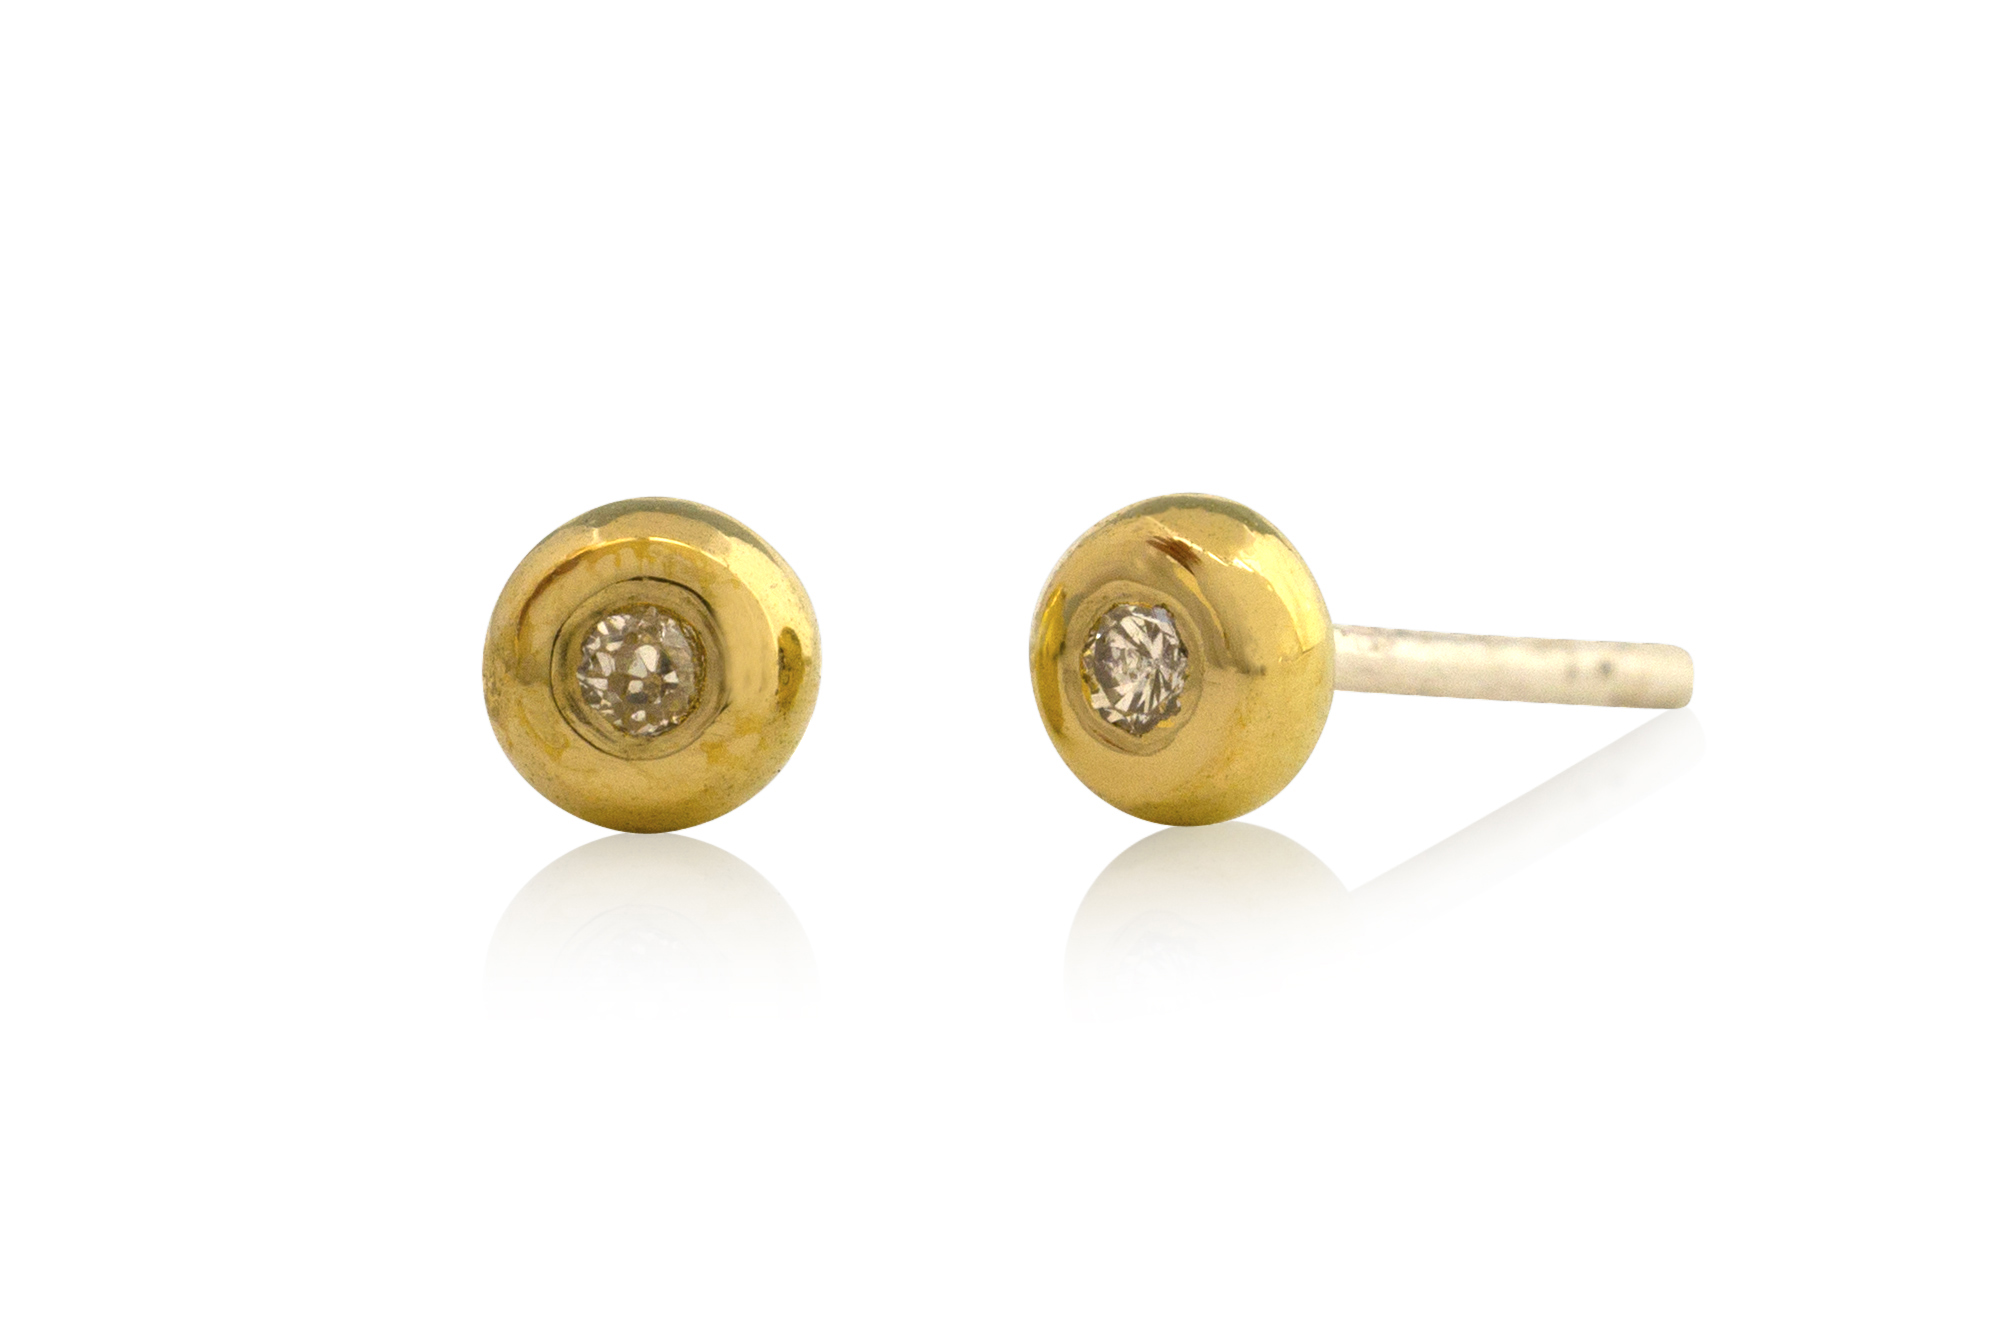 Left over gold and diamonds from the original ring were made into stud earrings.